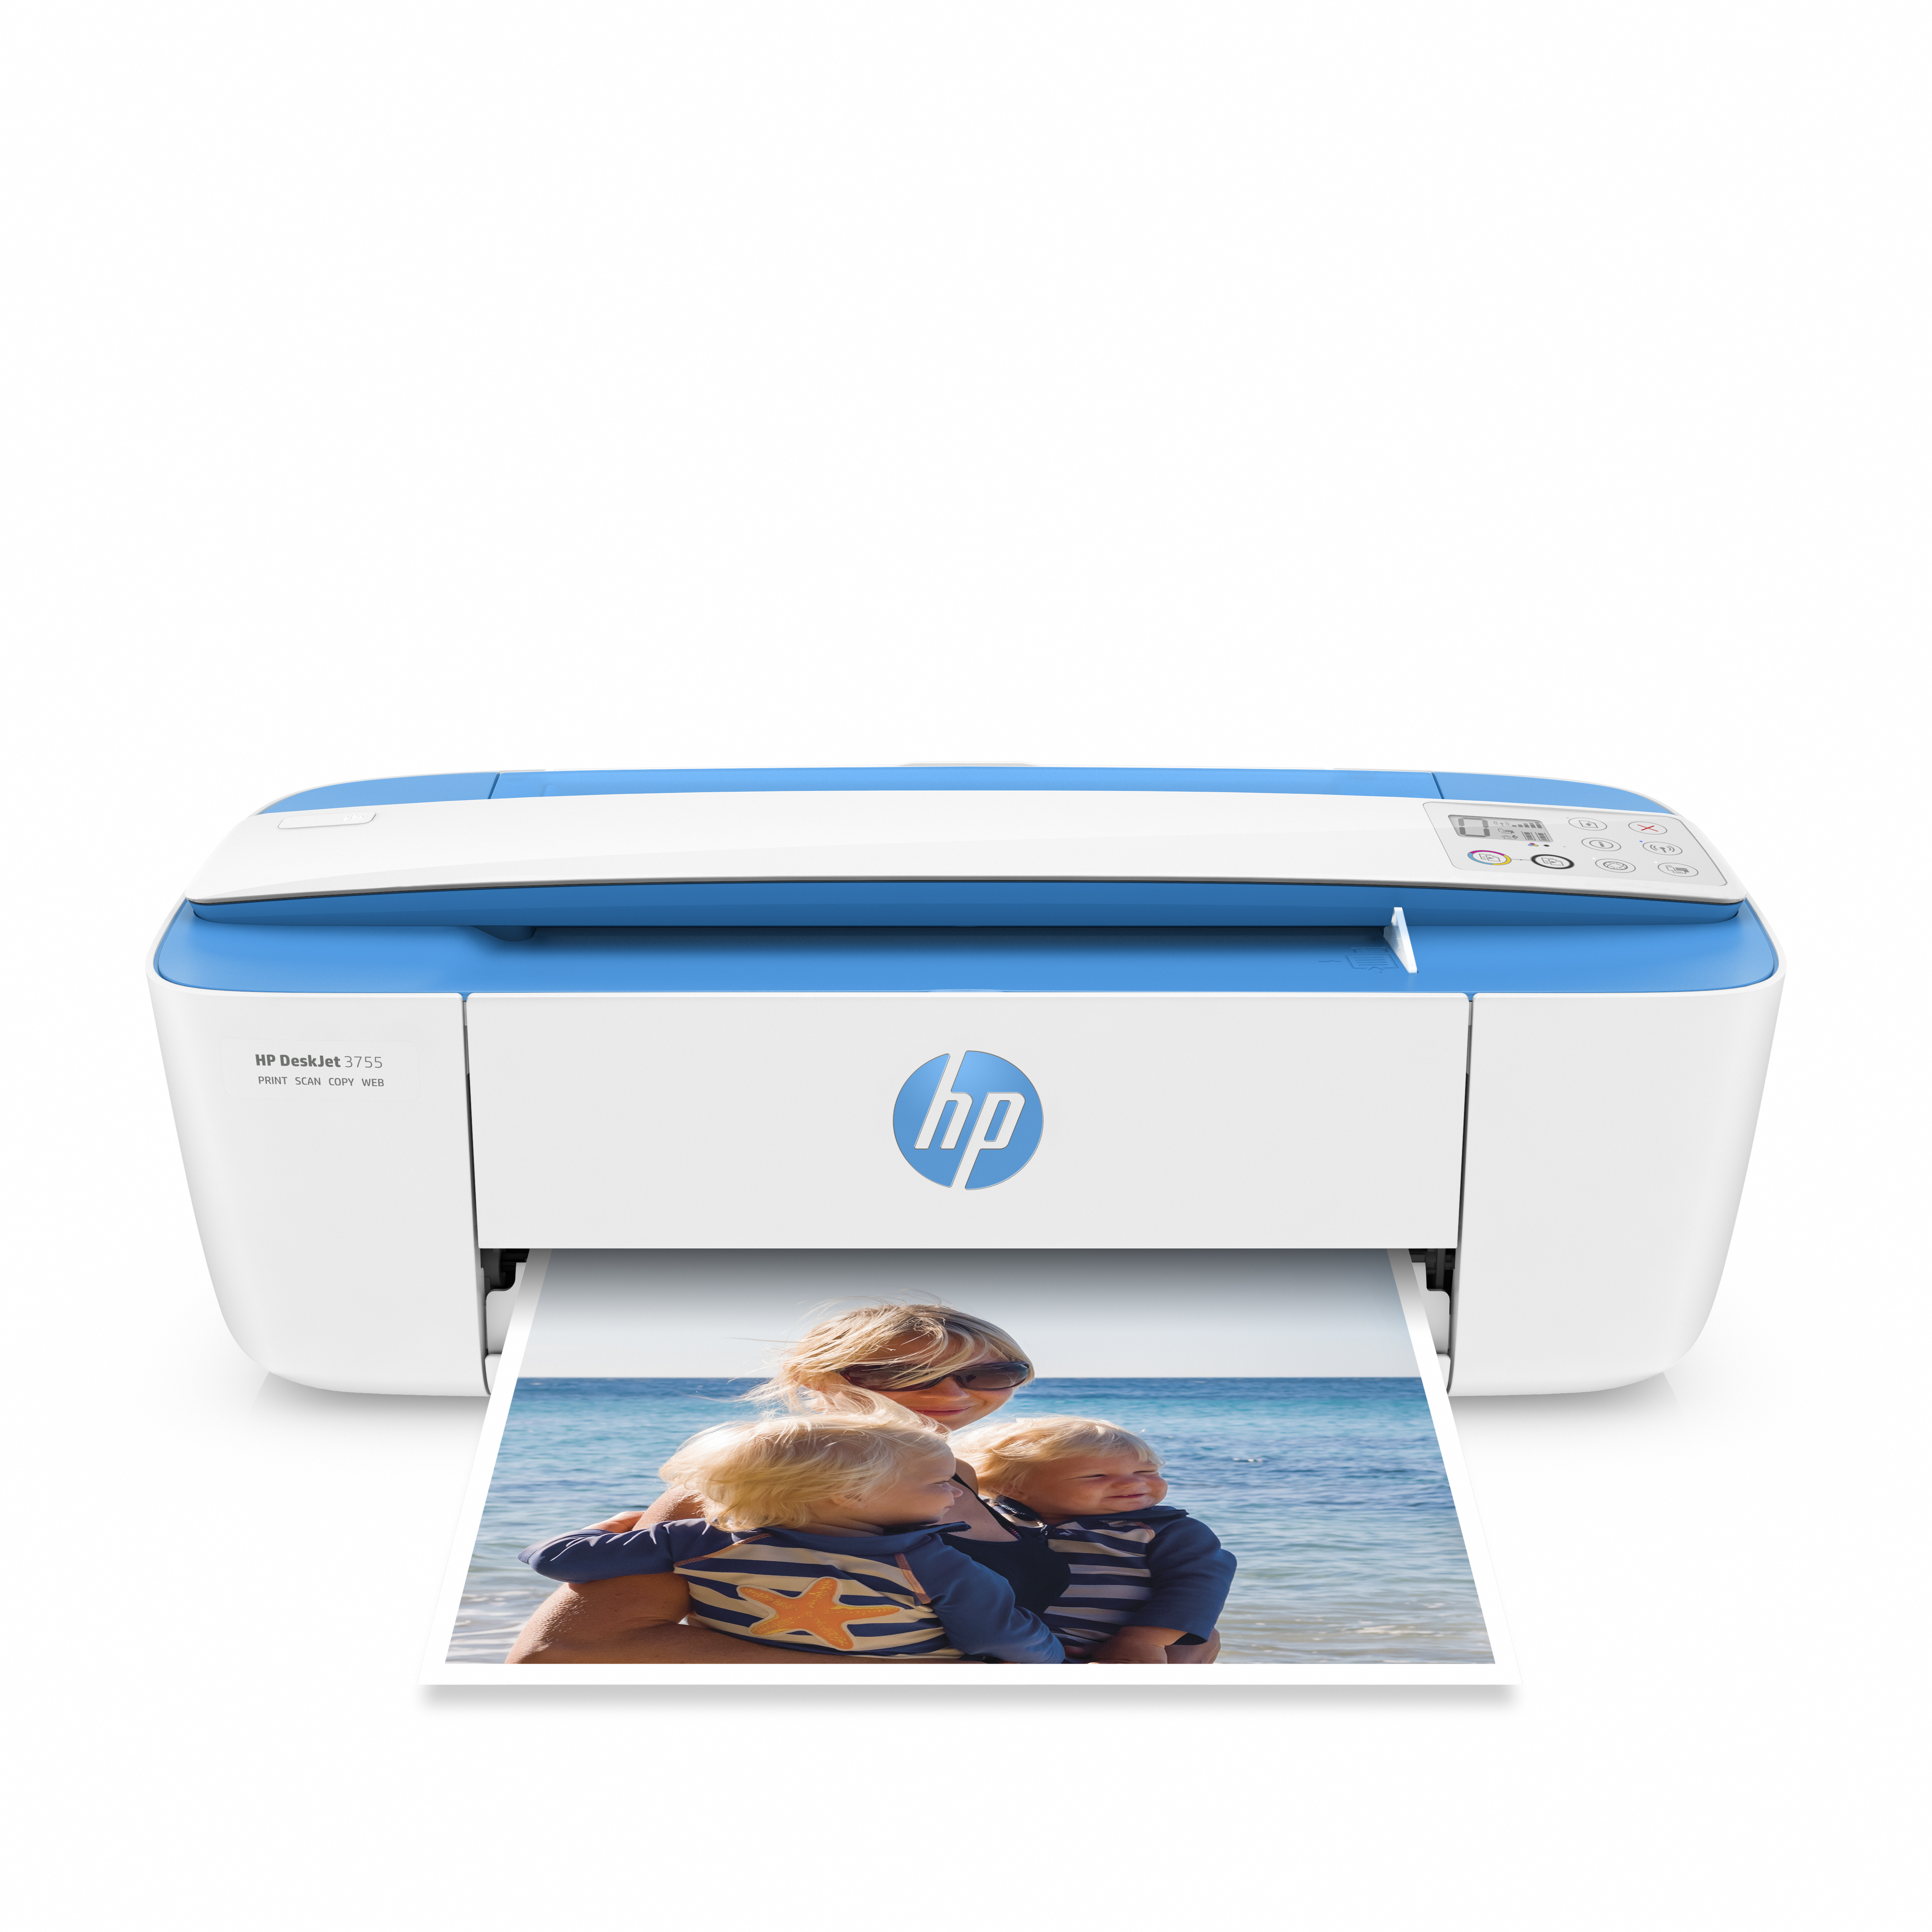 HP Deskjet 3755 All-in-One - multifunction printer (color)